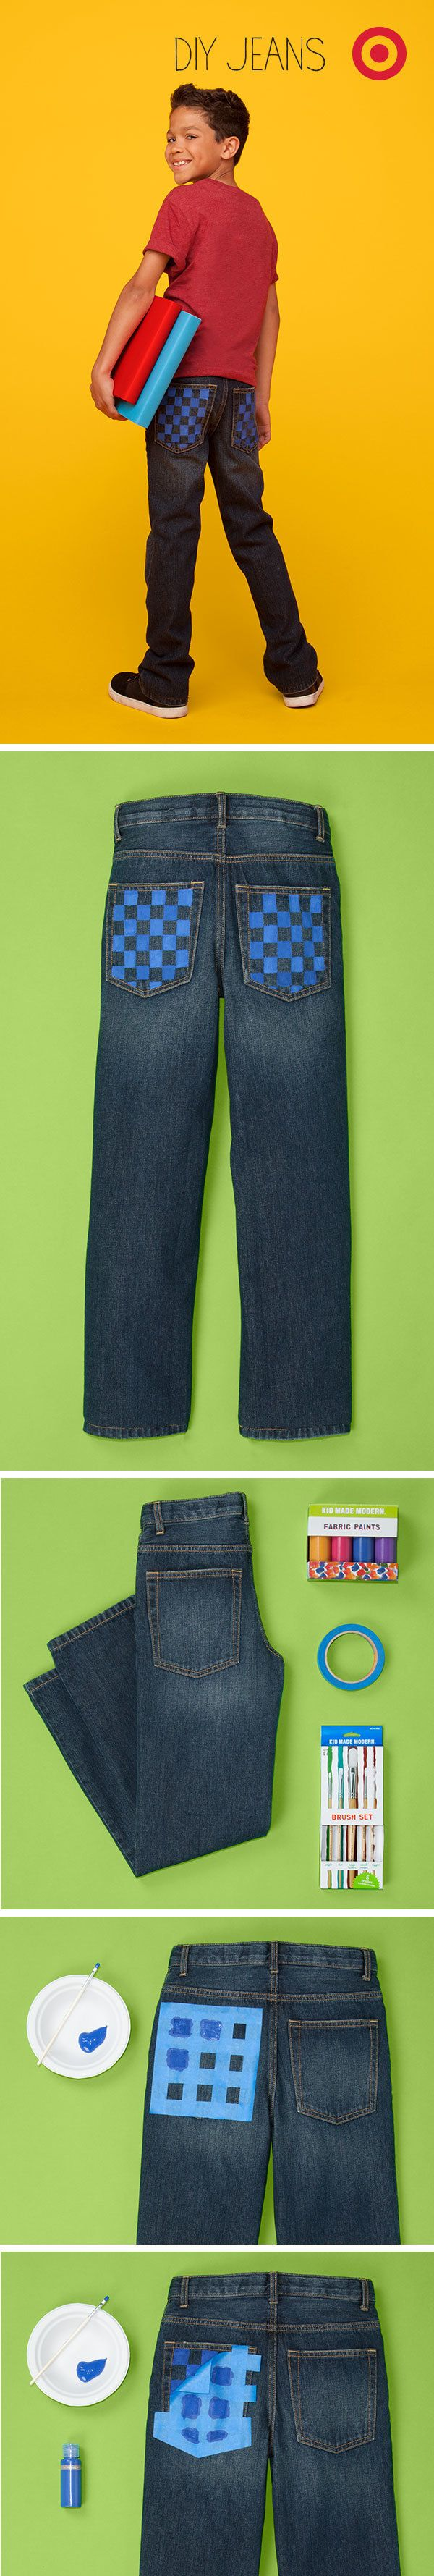 Check out this stylishly cheeky checkerboard pattern on the back pocket of these kids' jeans.